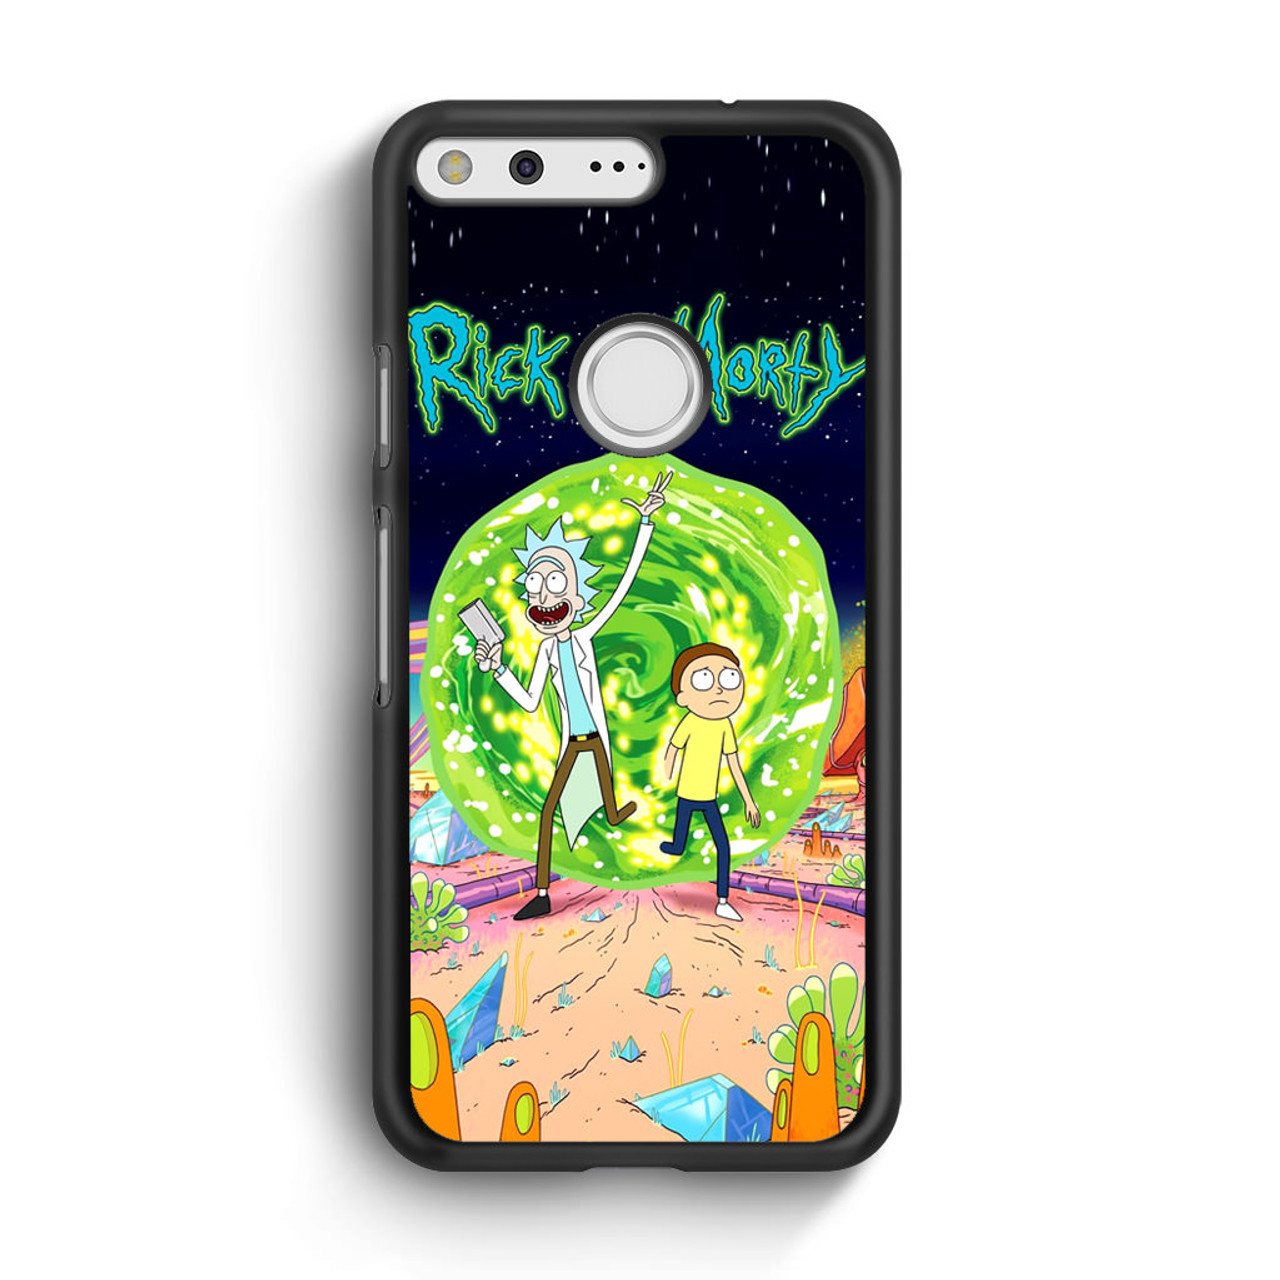 new concept 93b77 ab22a Rick and Morty Poster Google Pixel XL Case